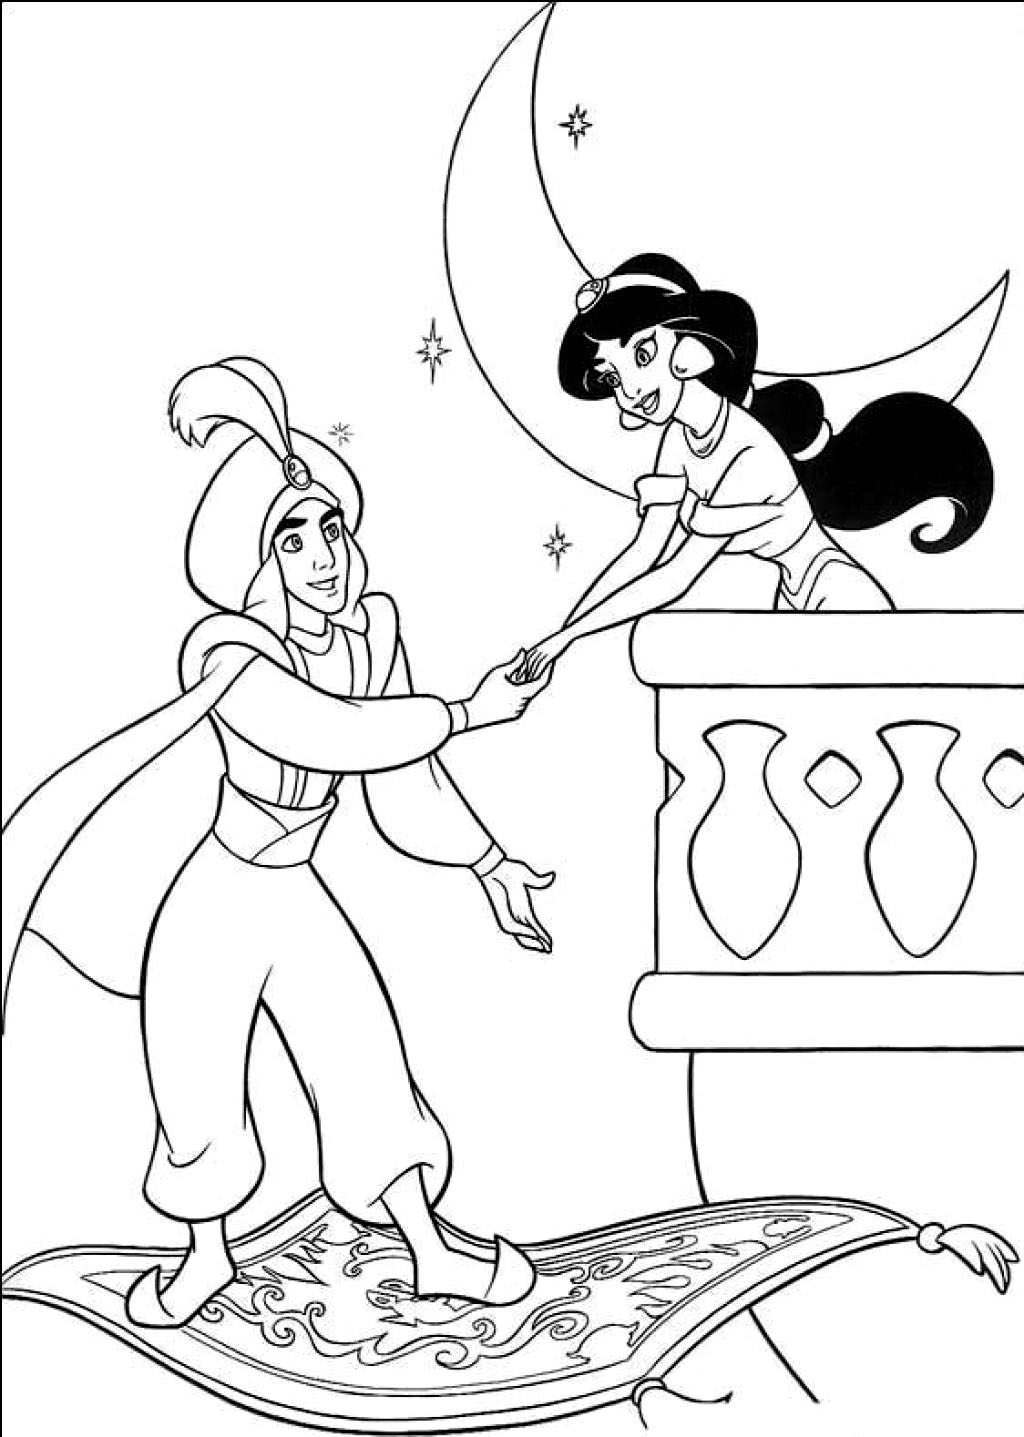 Printable Aladdin Coloring Pages | Coloring Me